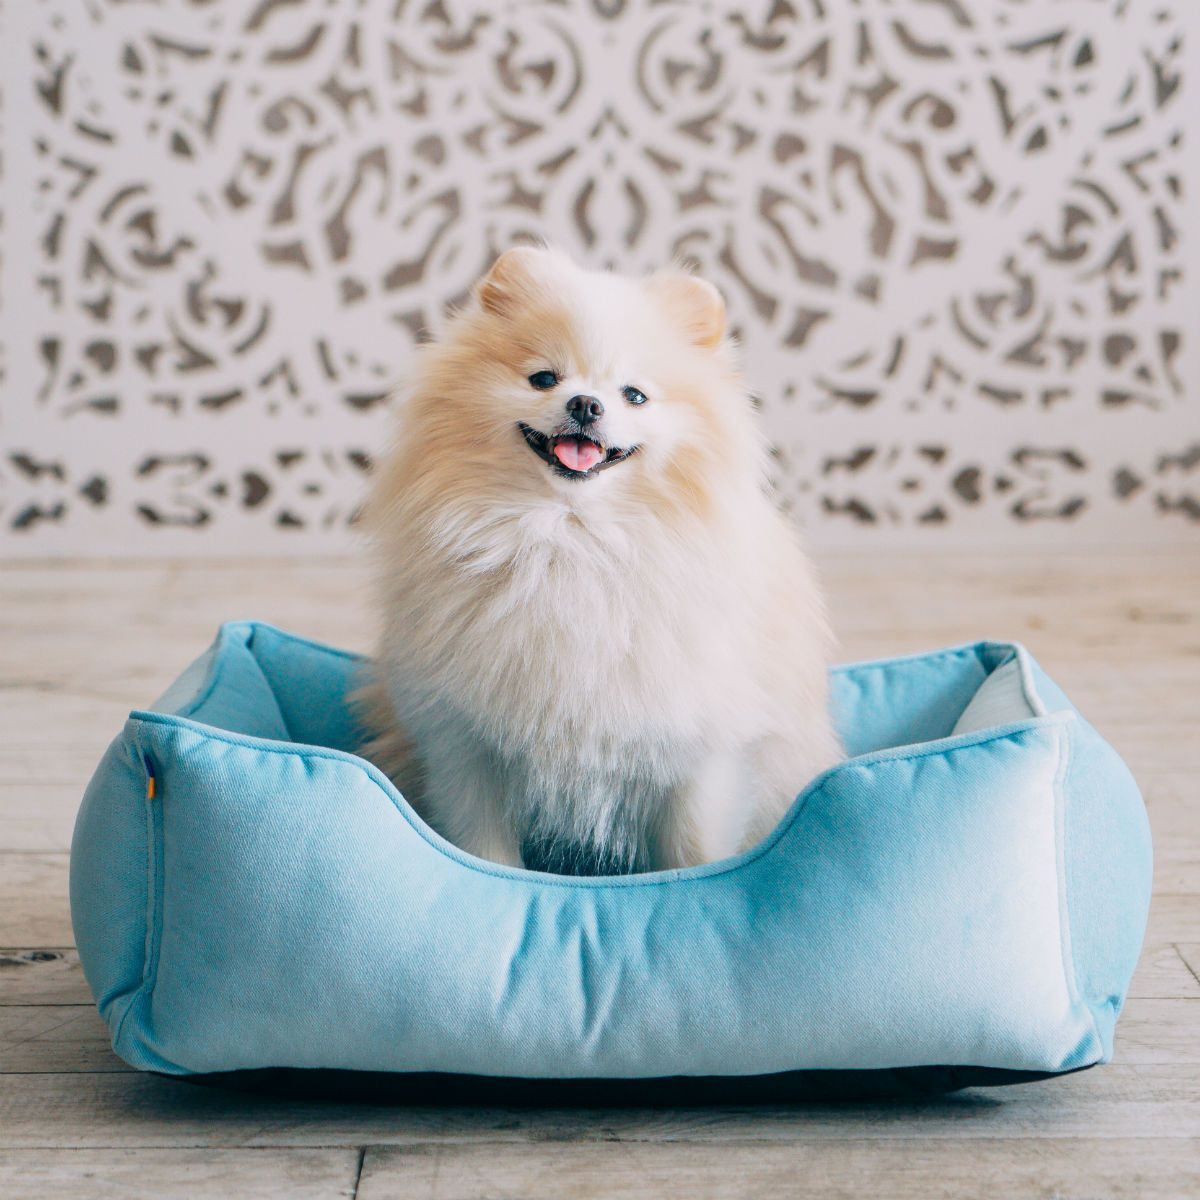 Dog BLUE velvet bed dreamer / Pet bed couch / Plush mat